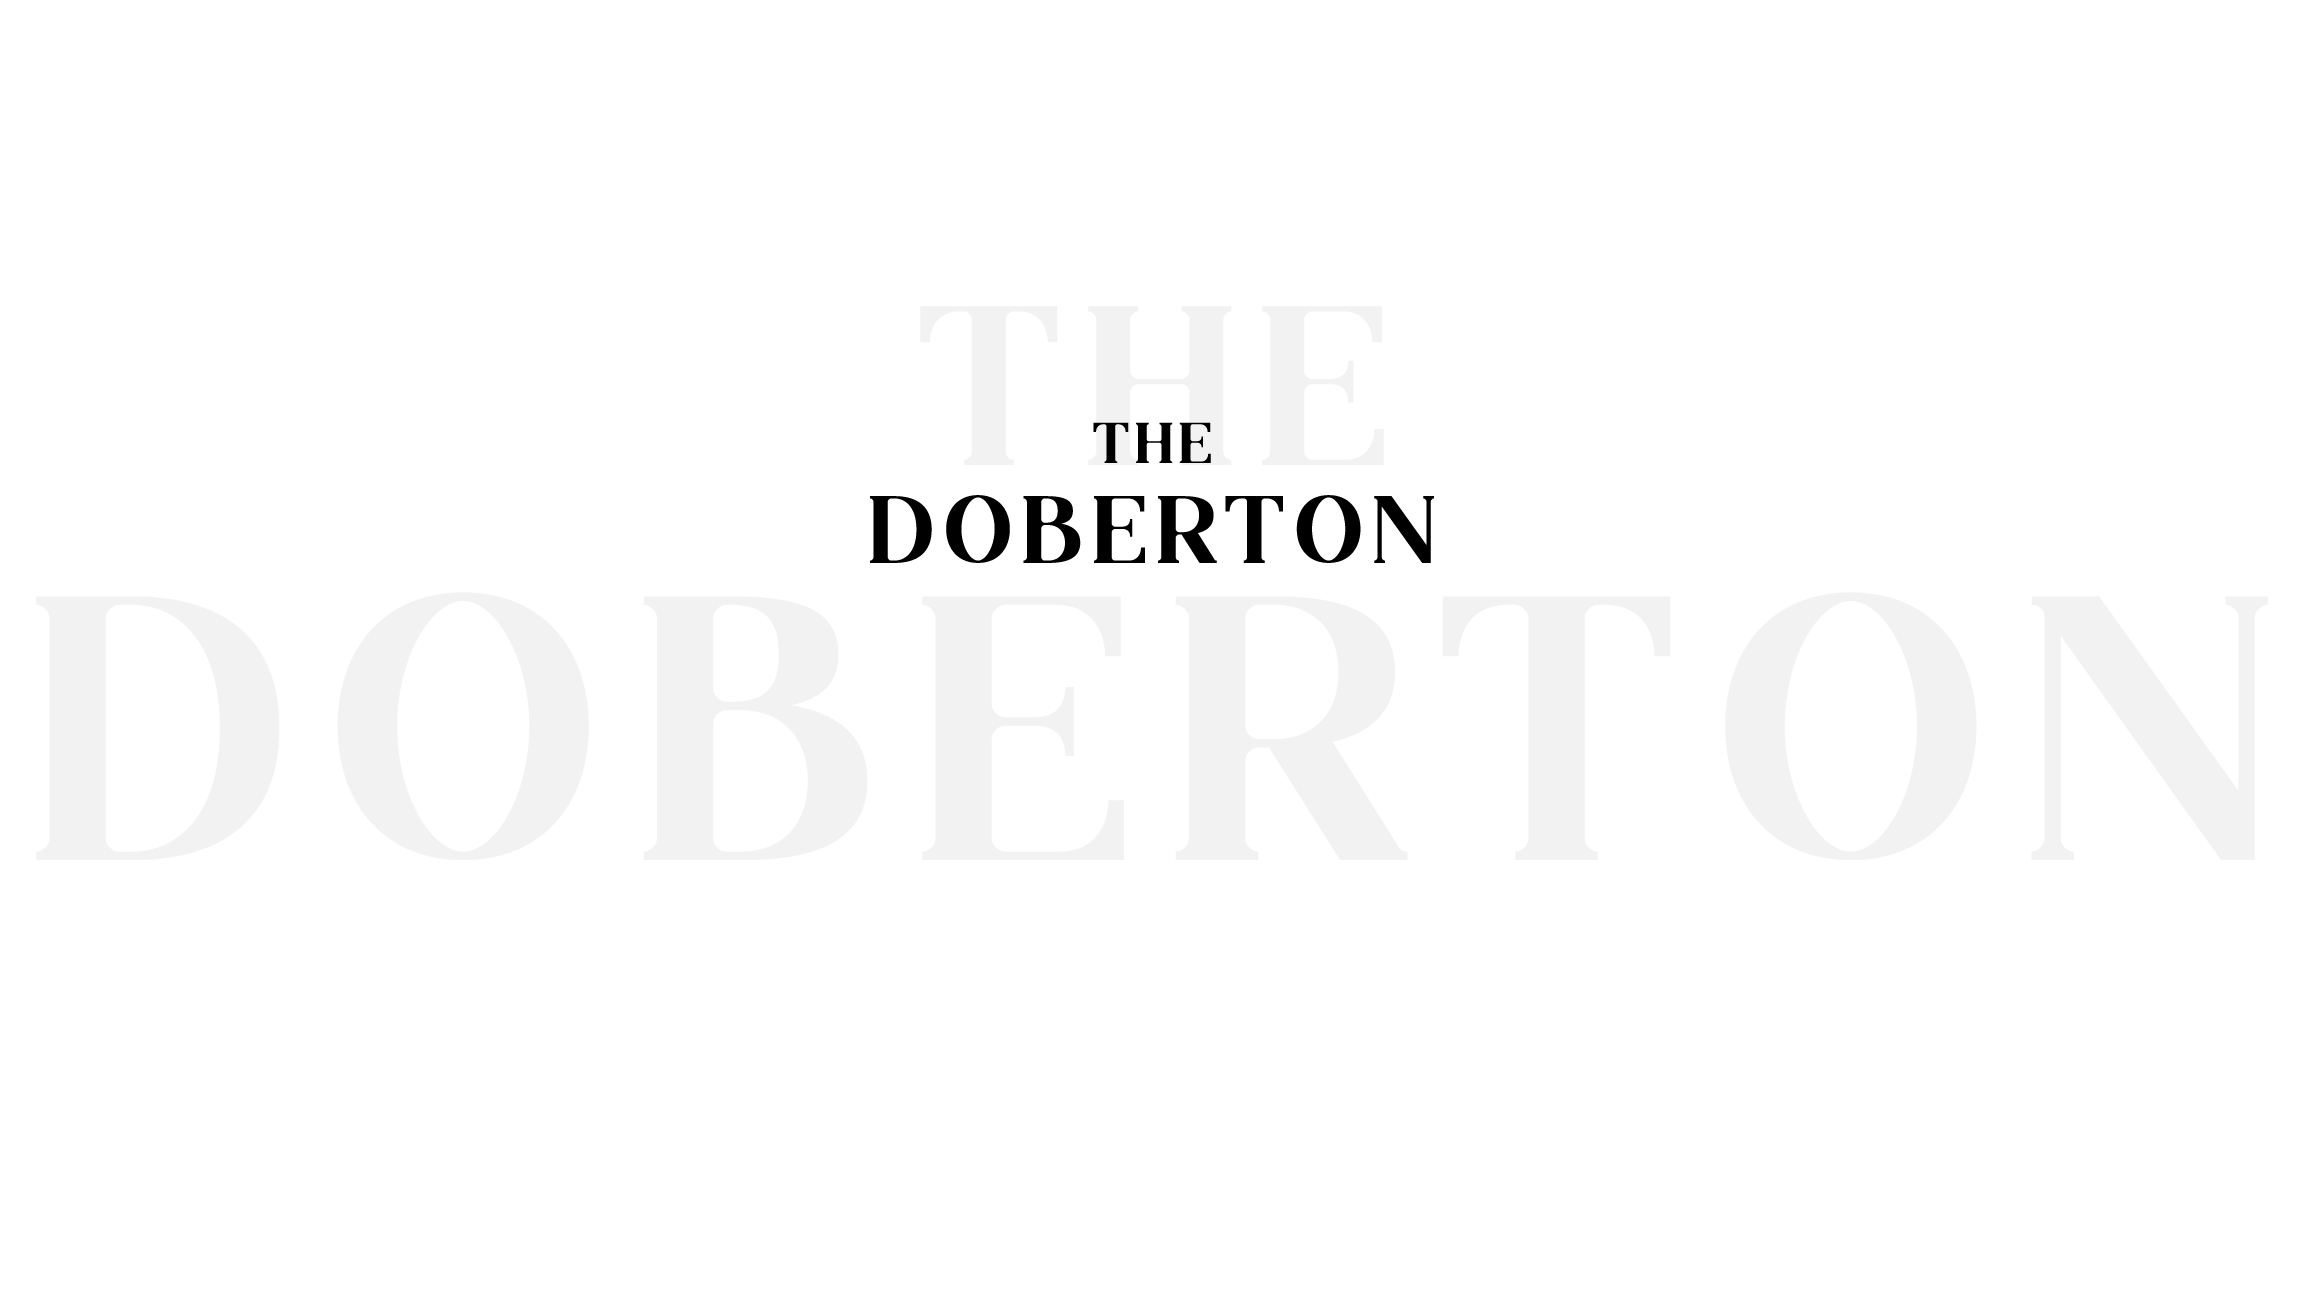 The Doberton - A Brand Strategy Newsletter for Creative Leadership